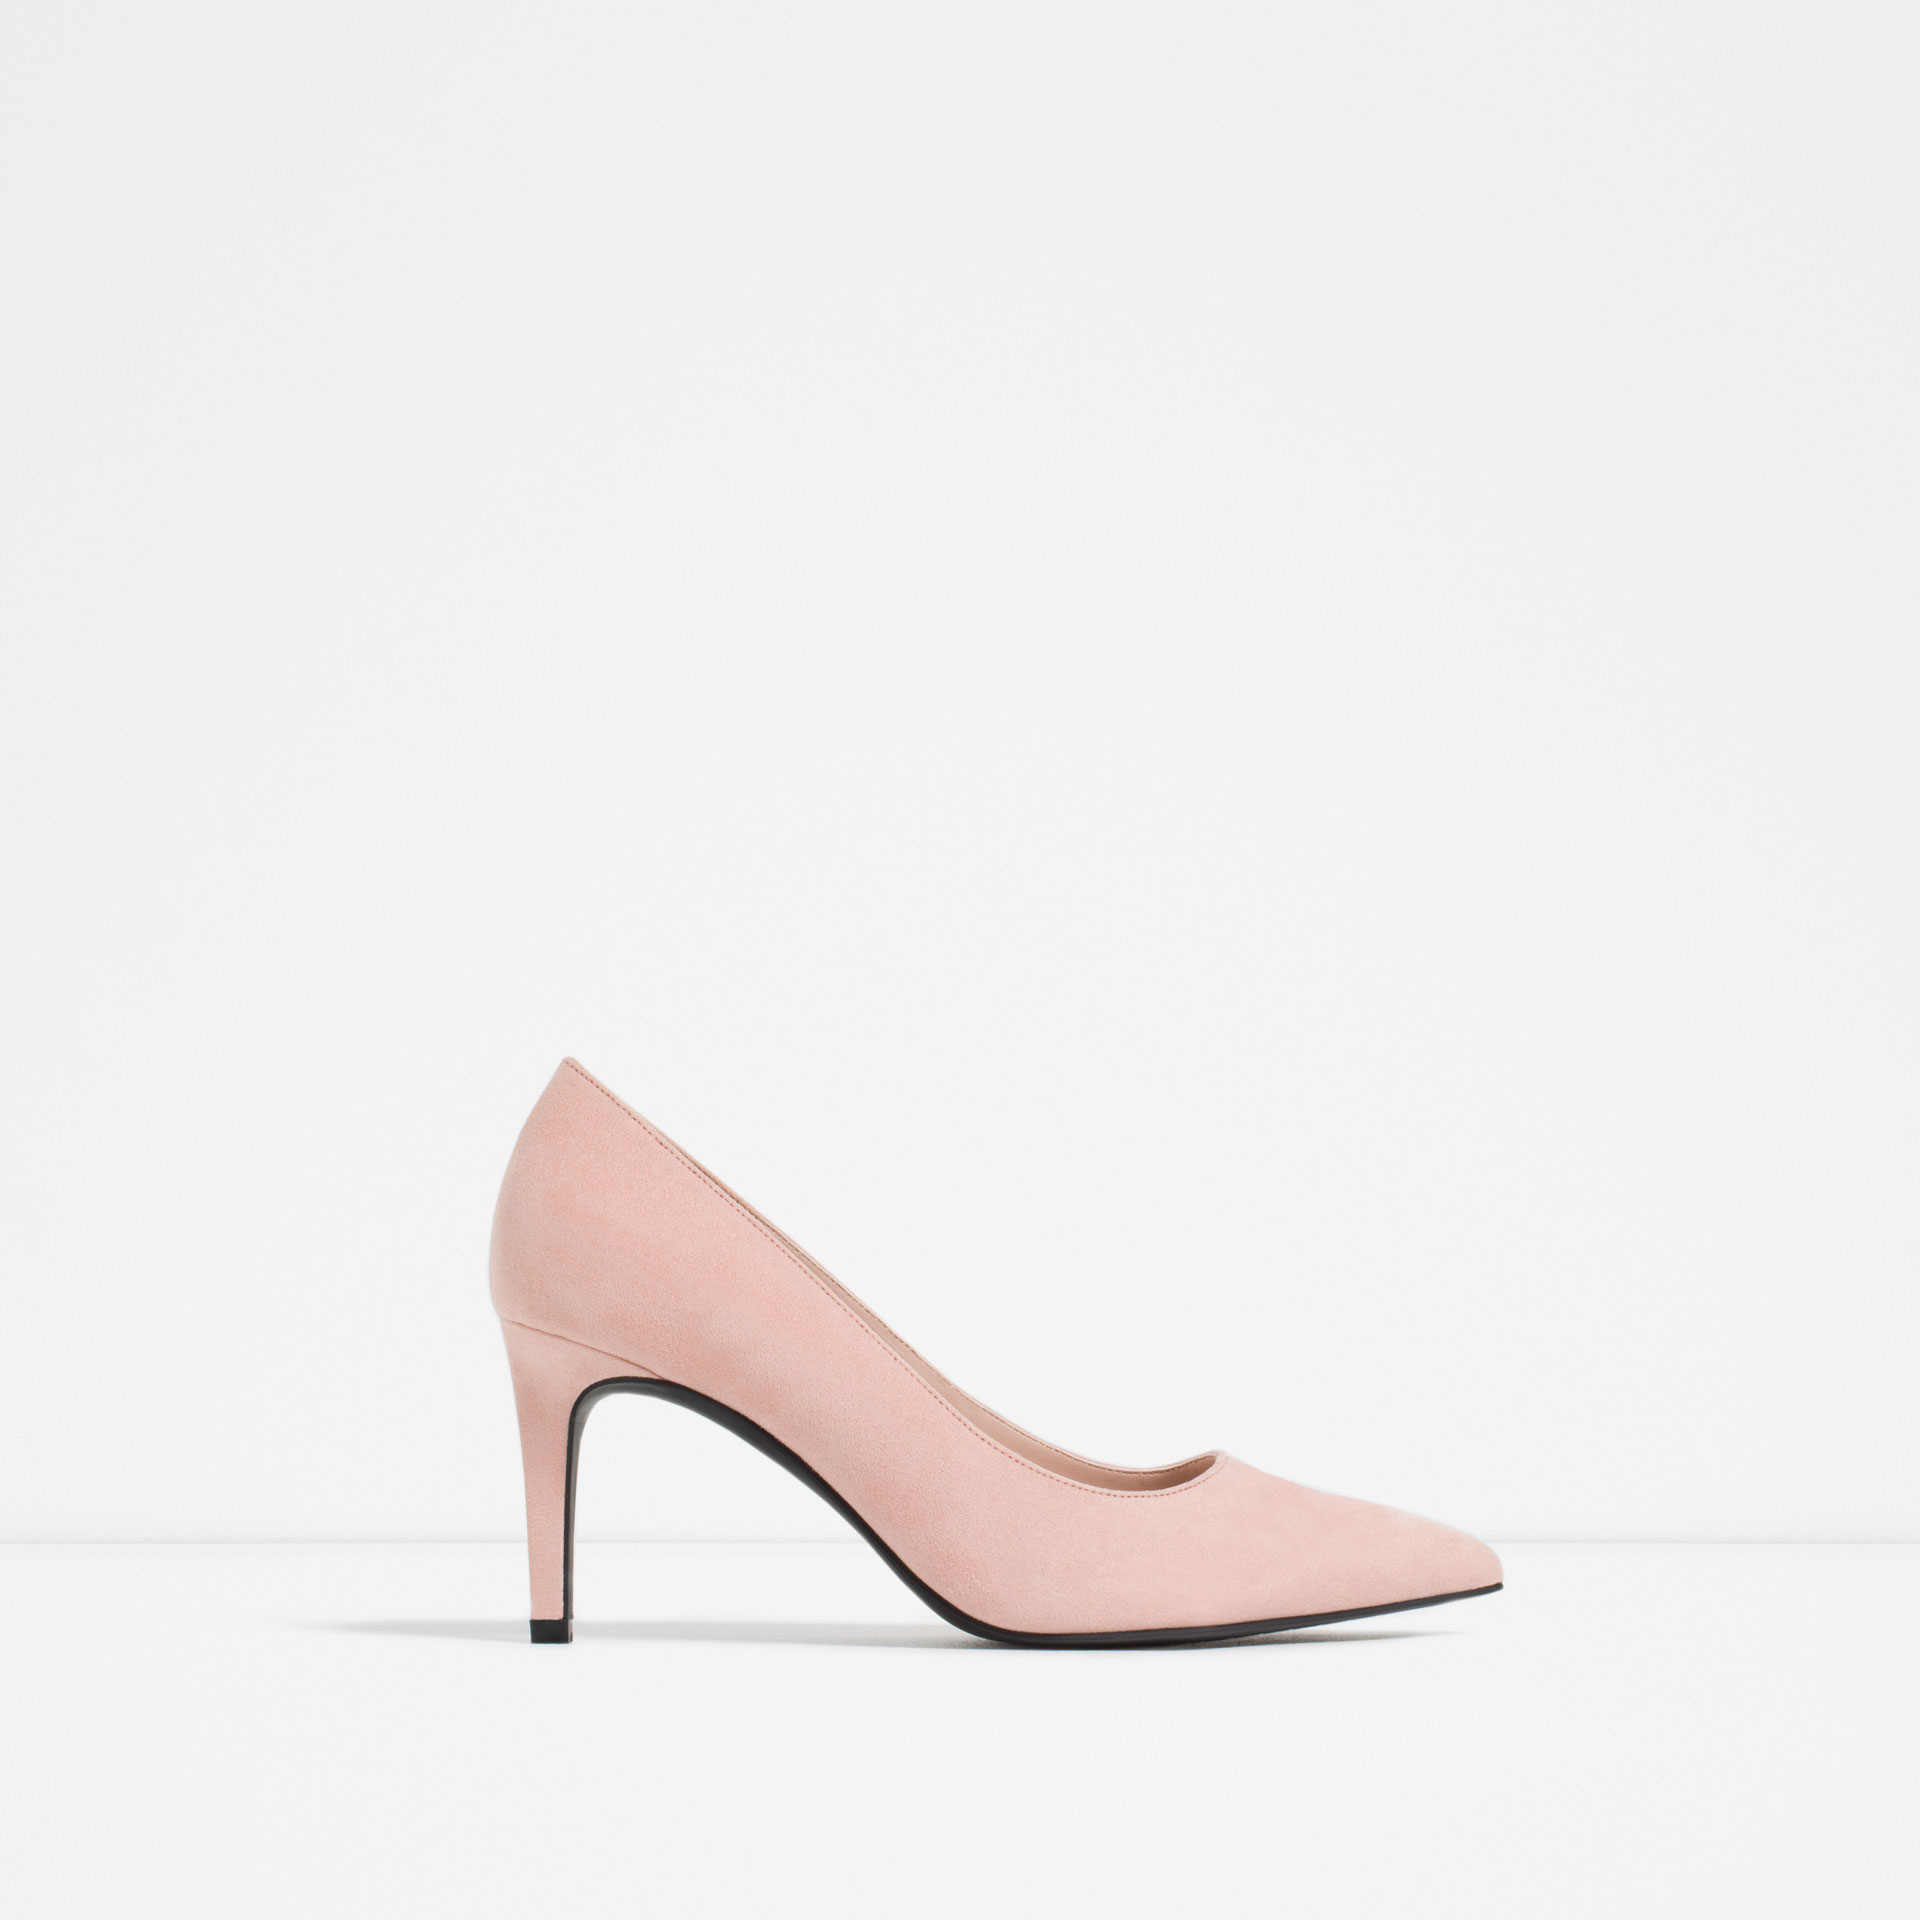 Zara Shoes Women With Popular Inspiration In India ...